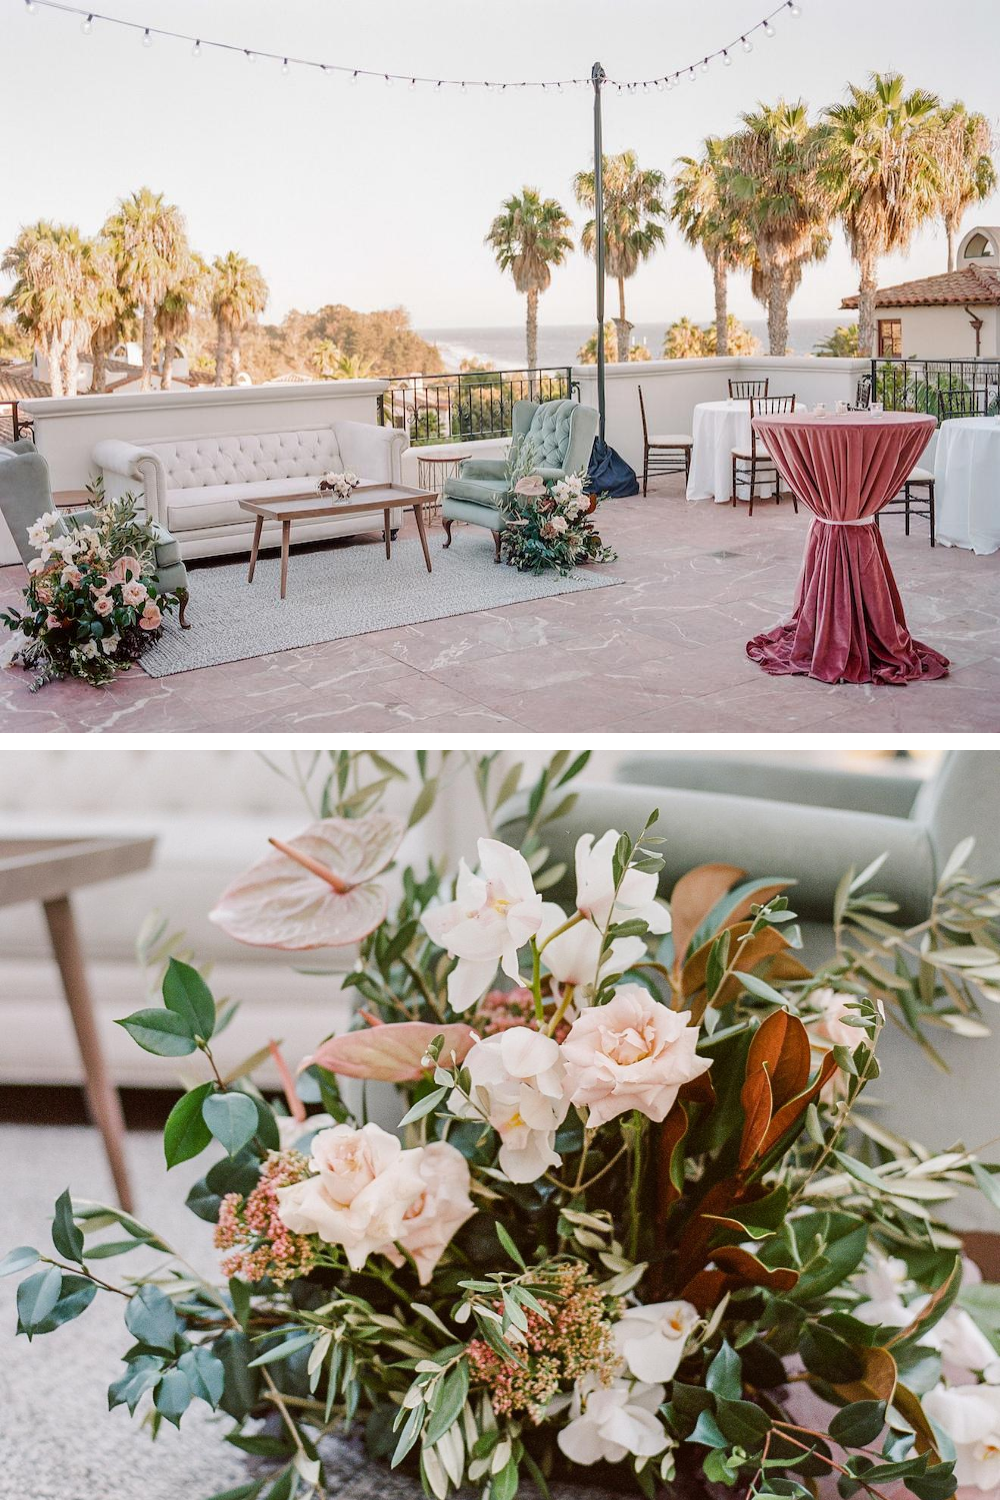 A romantic furniture lounge in soft colors with leafy floral arrangements on a terrace overlooking the Pacific Ocean on the terrace at the Ritz-Carlton Bacara resort.